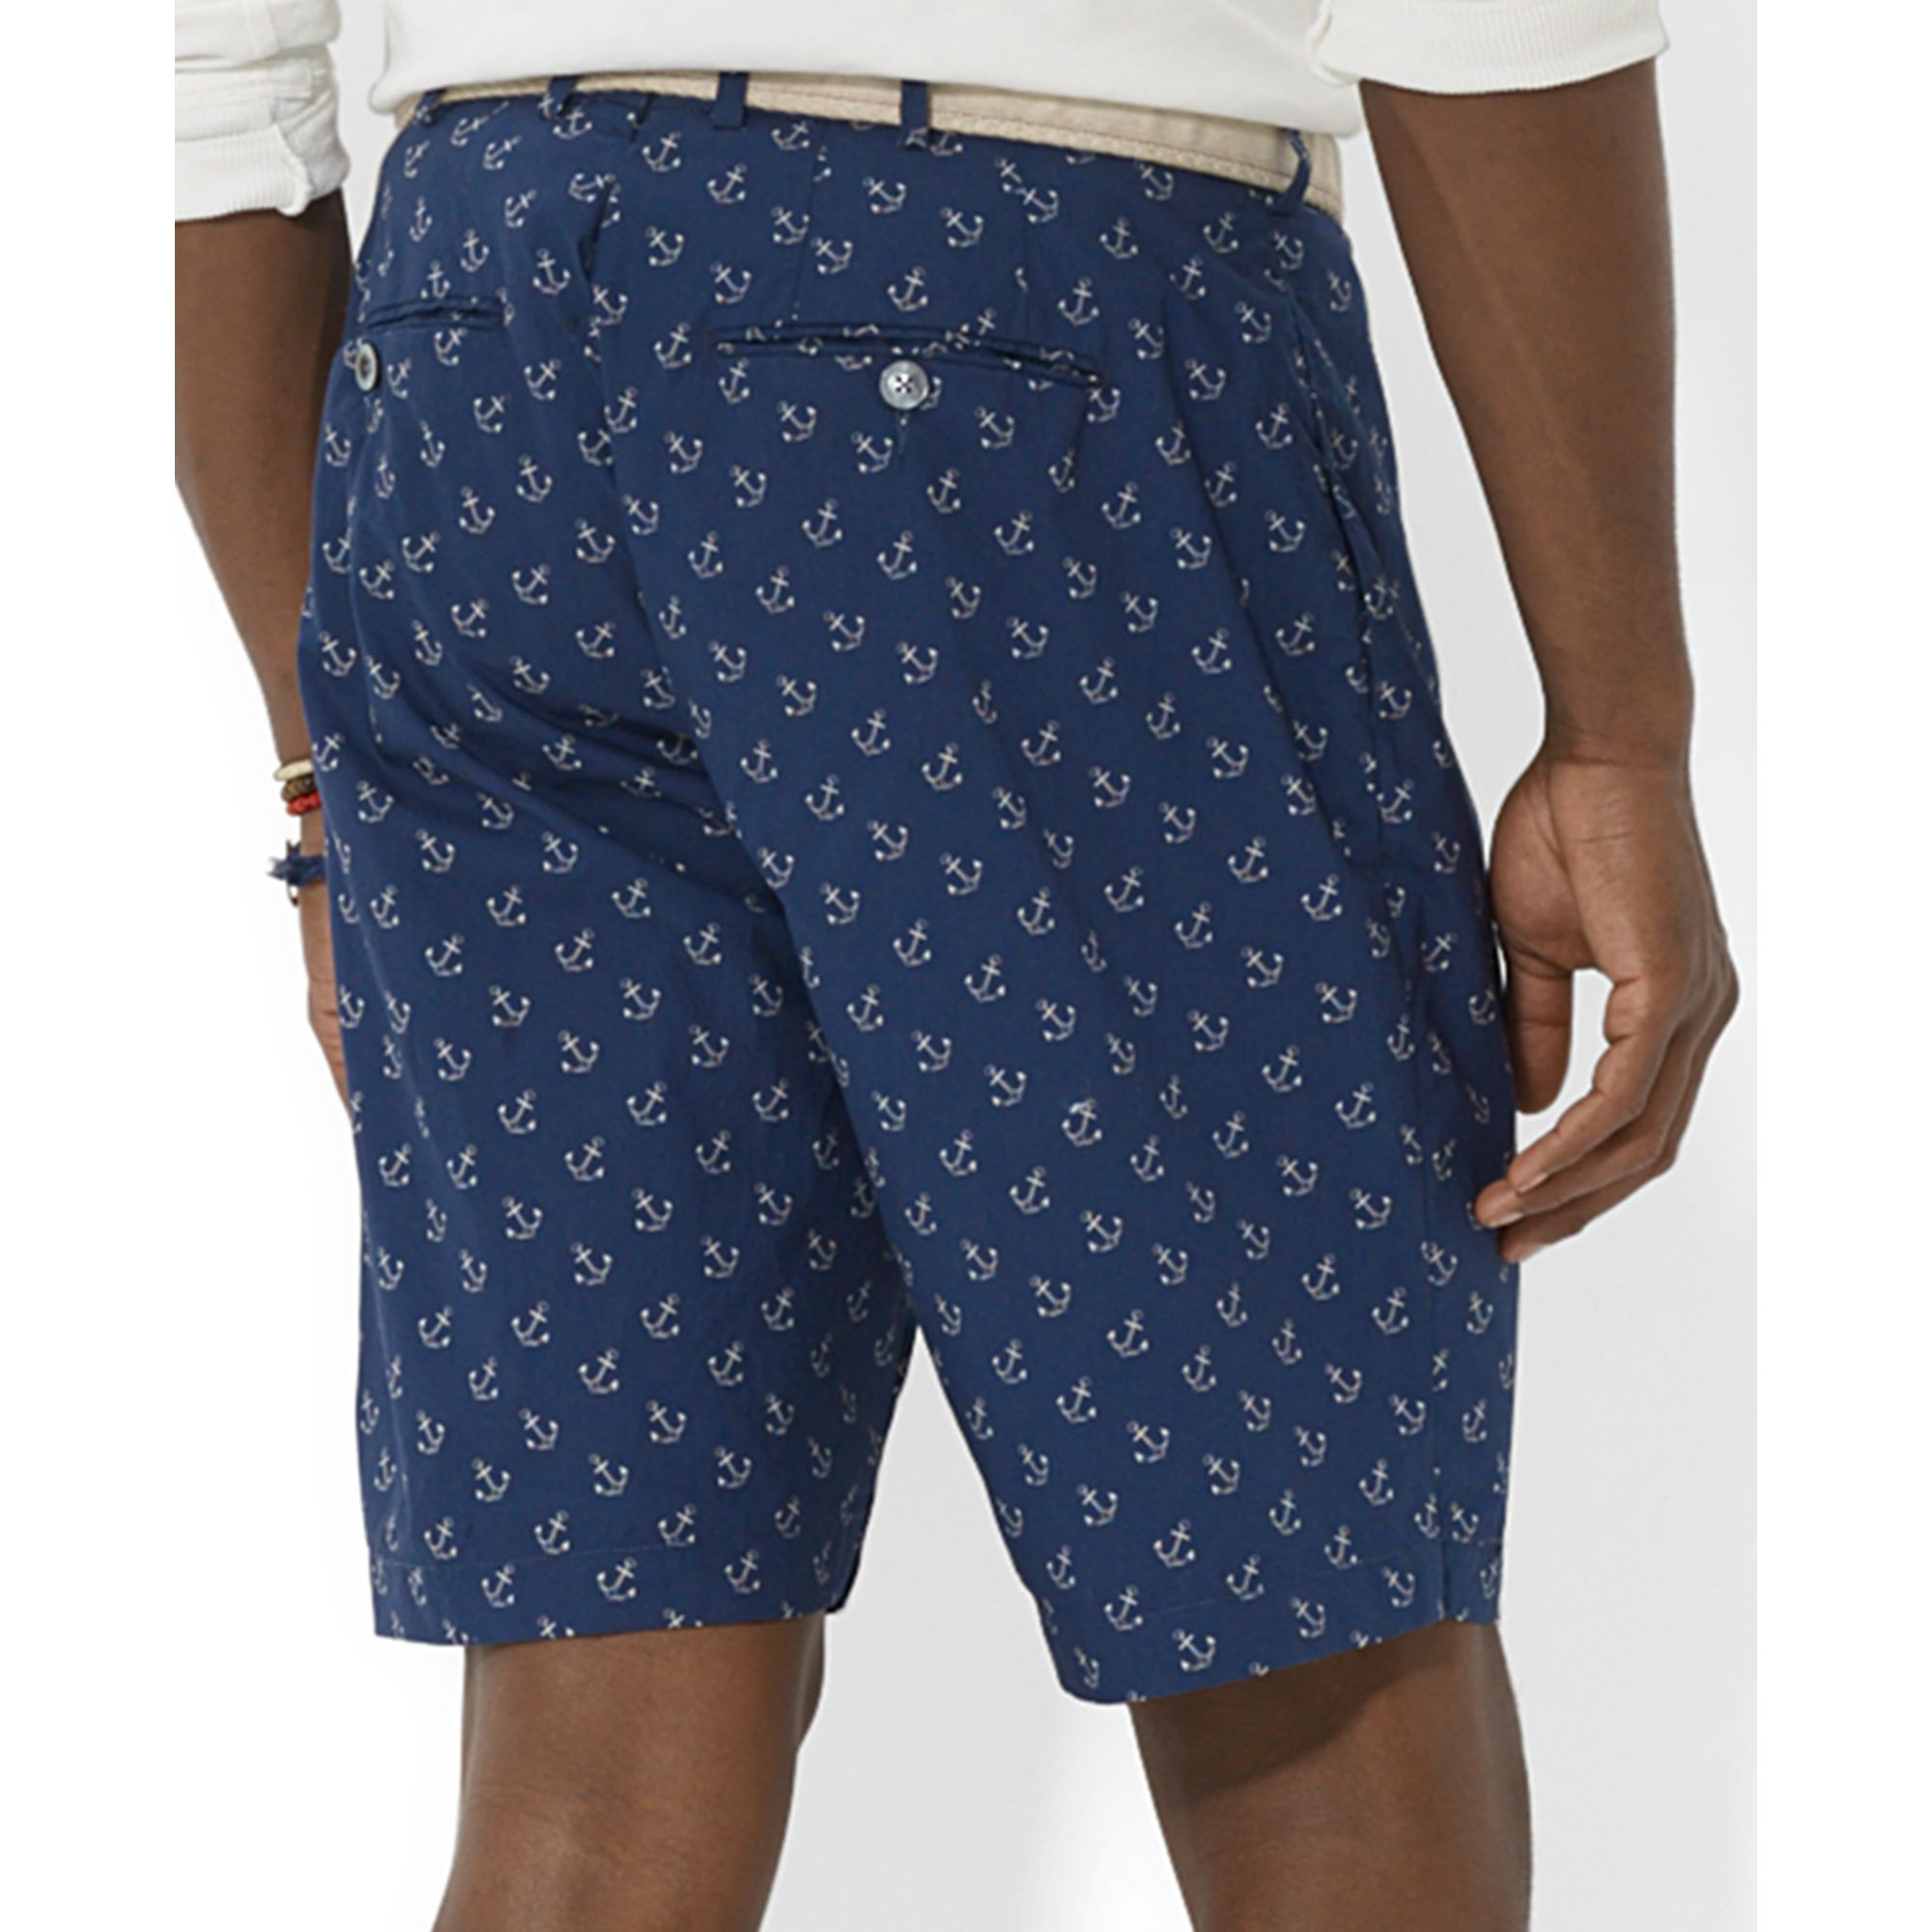 Express your self with our extensive collection of Anchor Boxer Shorts. Our boxer shorts are made of % lightweight cotton for breathable comfort.